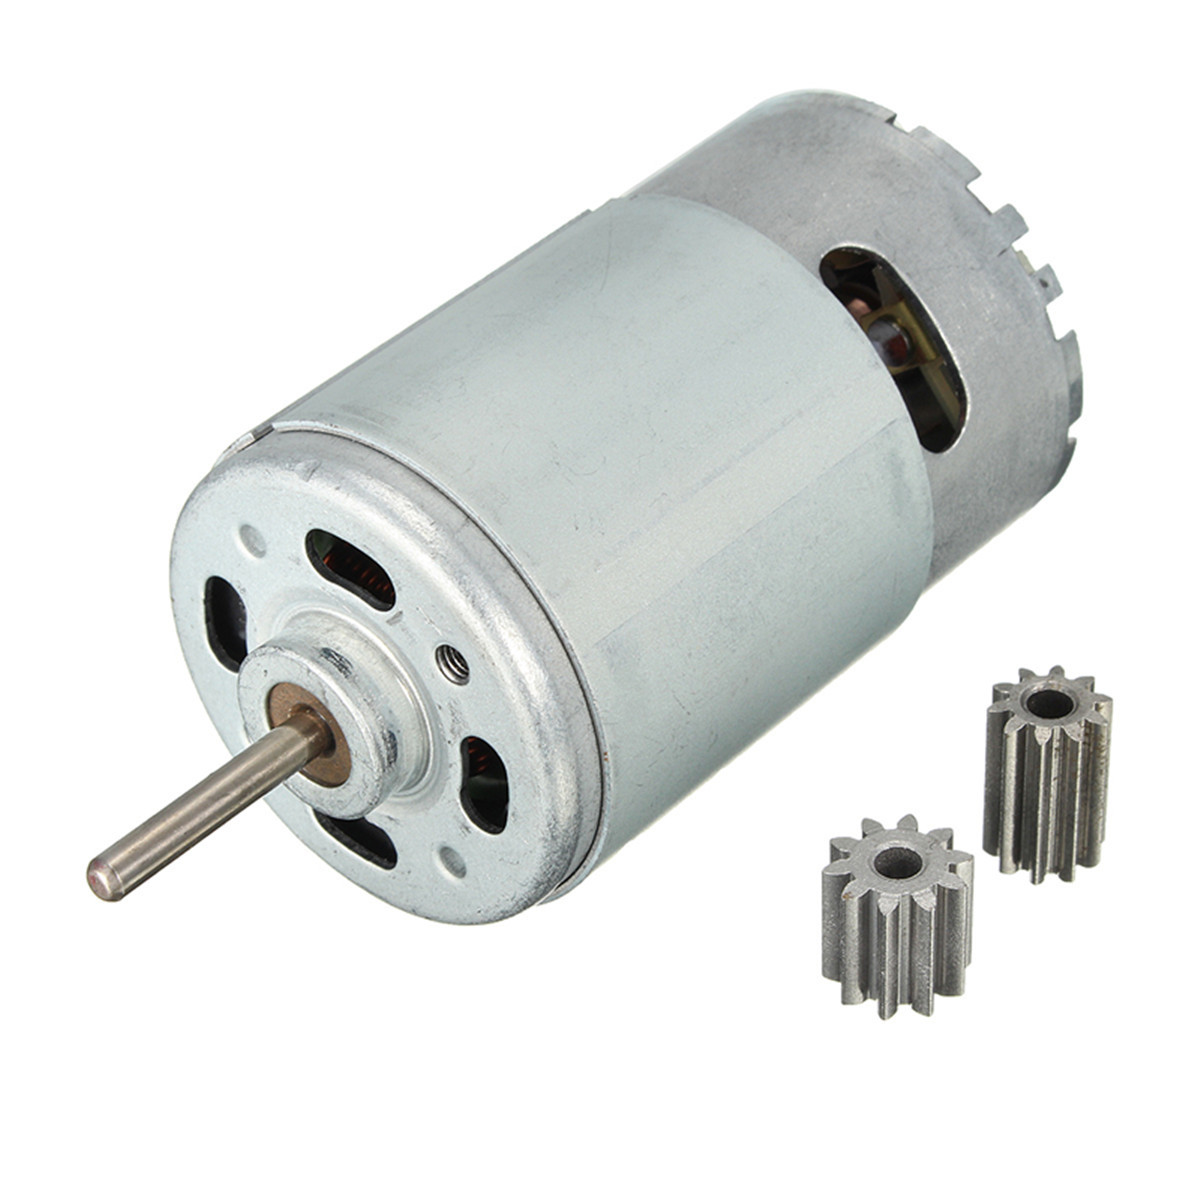 Best Price Dc 12v 30000 Rpm Motor Gears Rotary Speed Gear